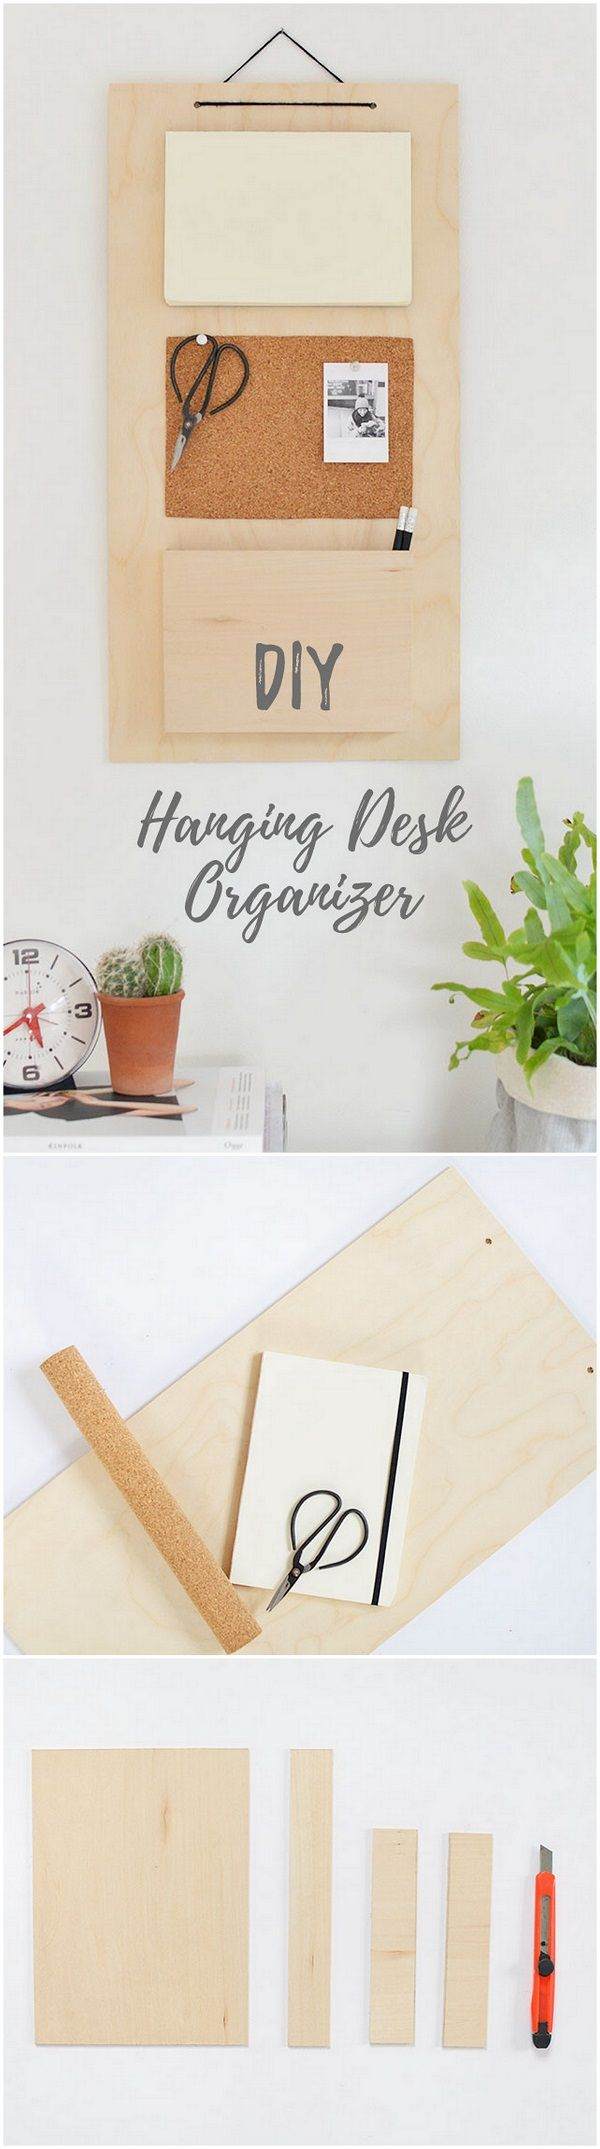 20 Awesome Minimalist DIY Home Decor Project Ideas | Wood projects ...